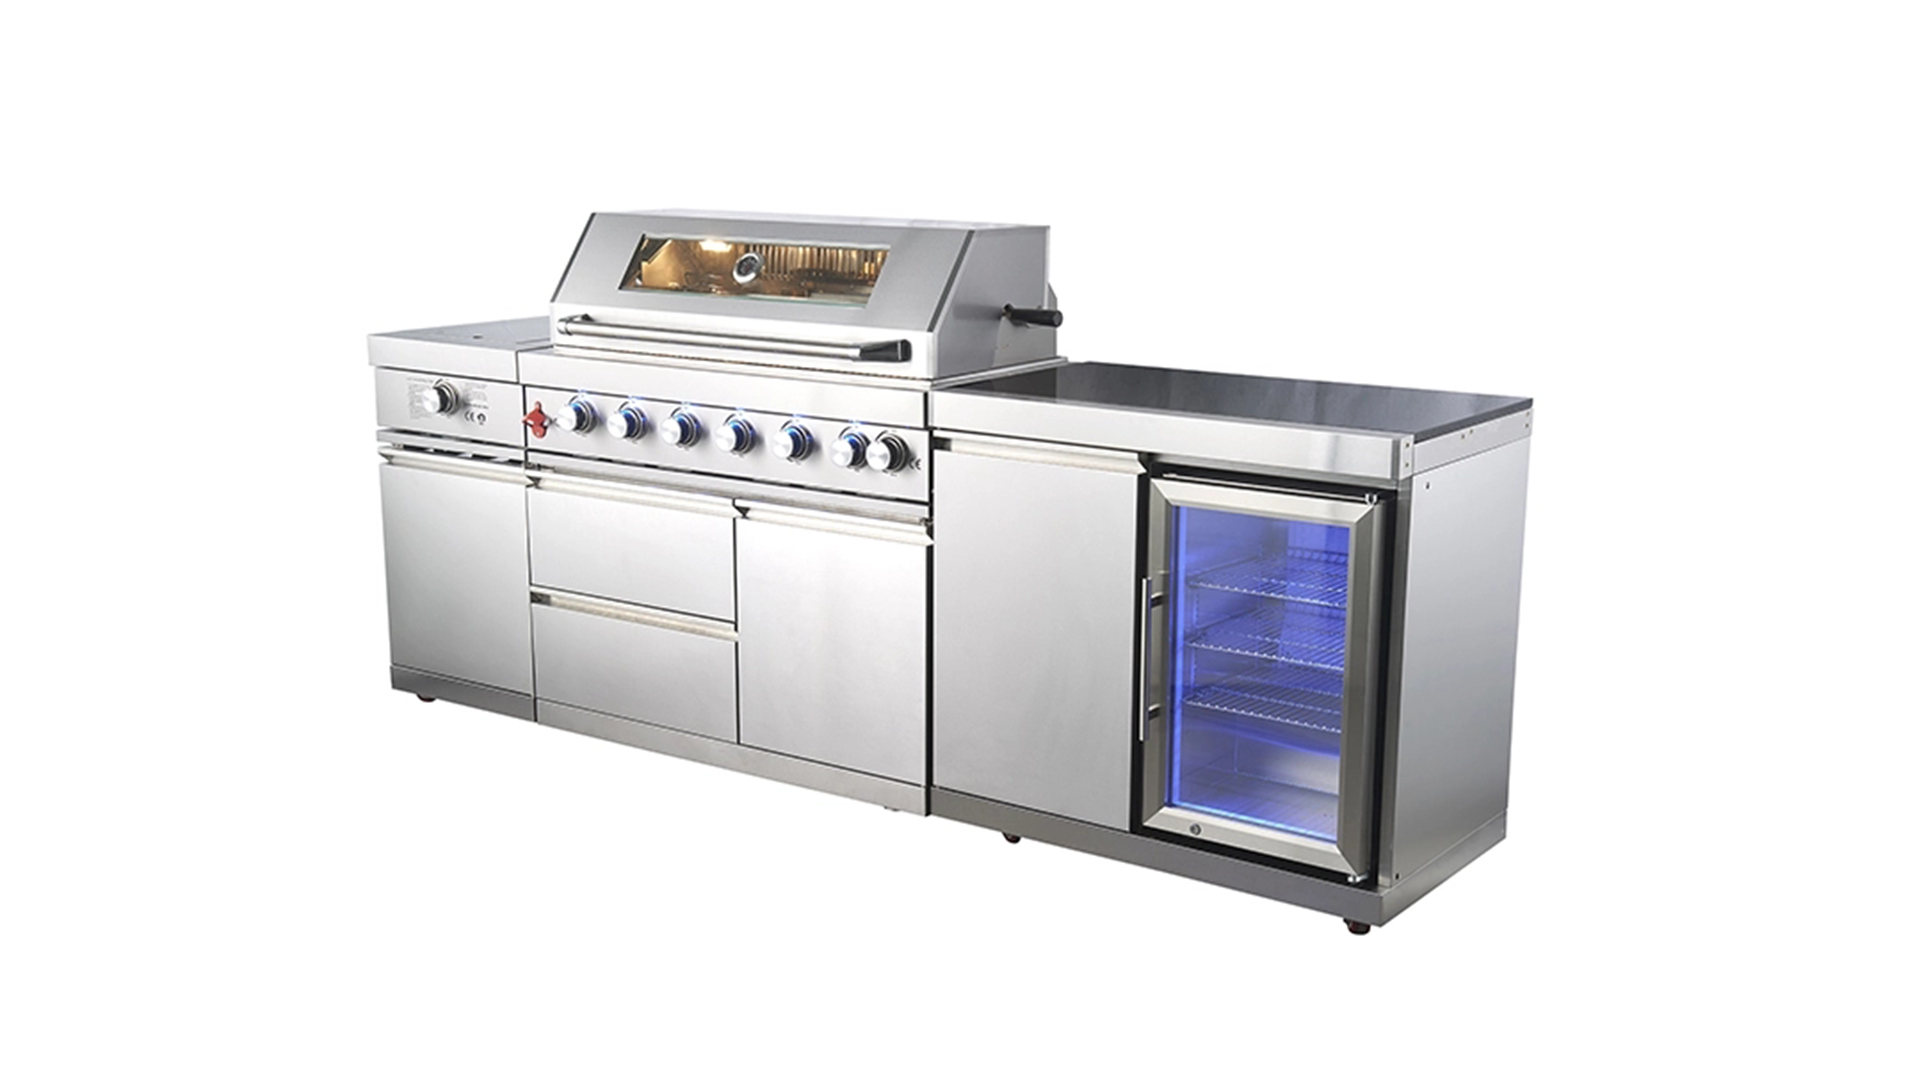 WST-001-2-1-S Custom Outdoor Kitchen Garden Barbecue New Designed Stainless Steel BBQ Gas Grill With Refrigerator